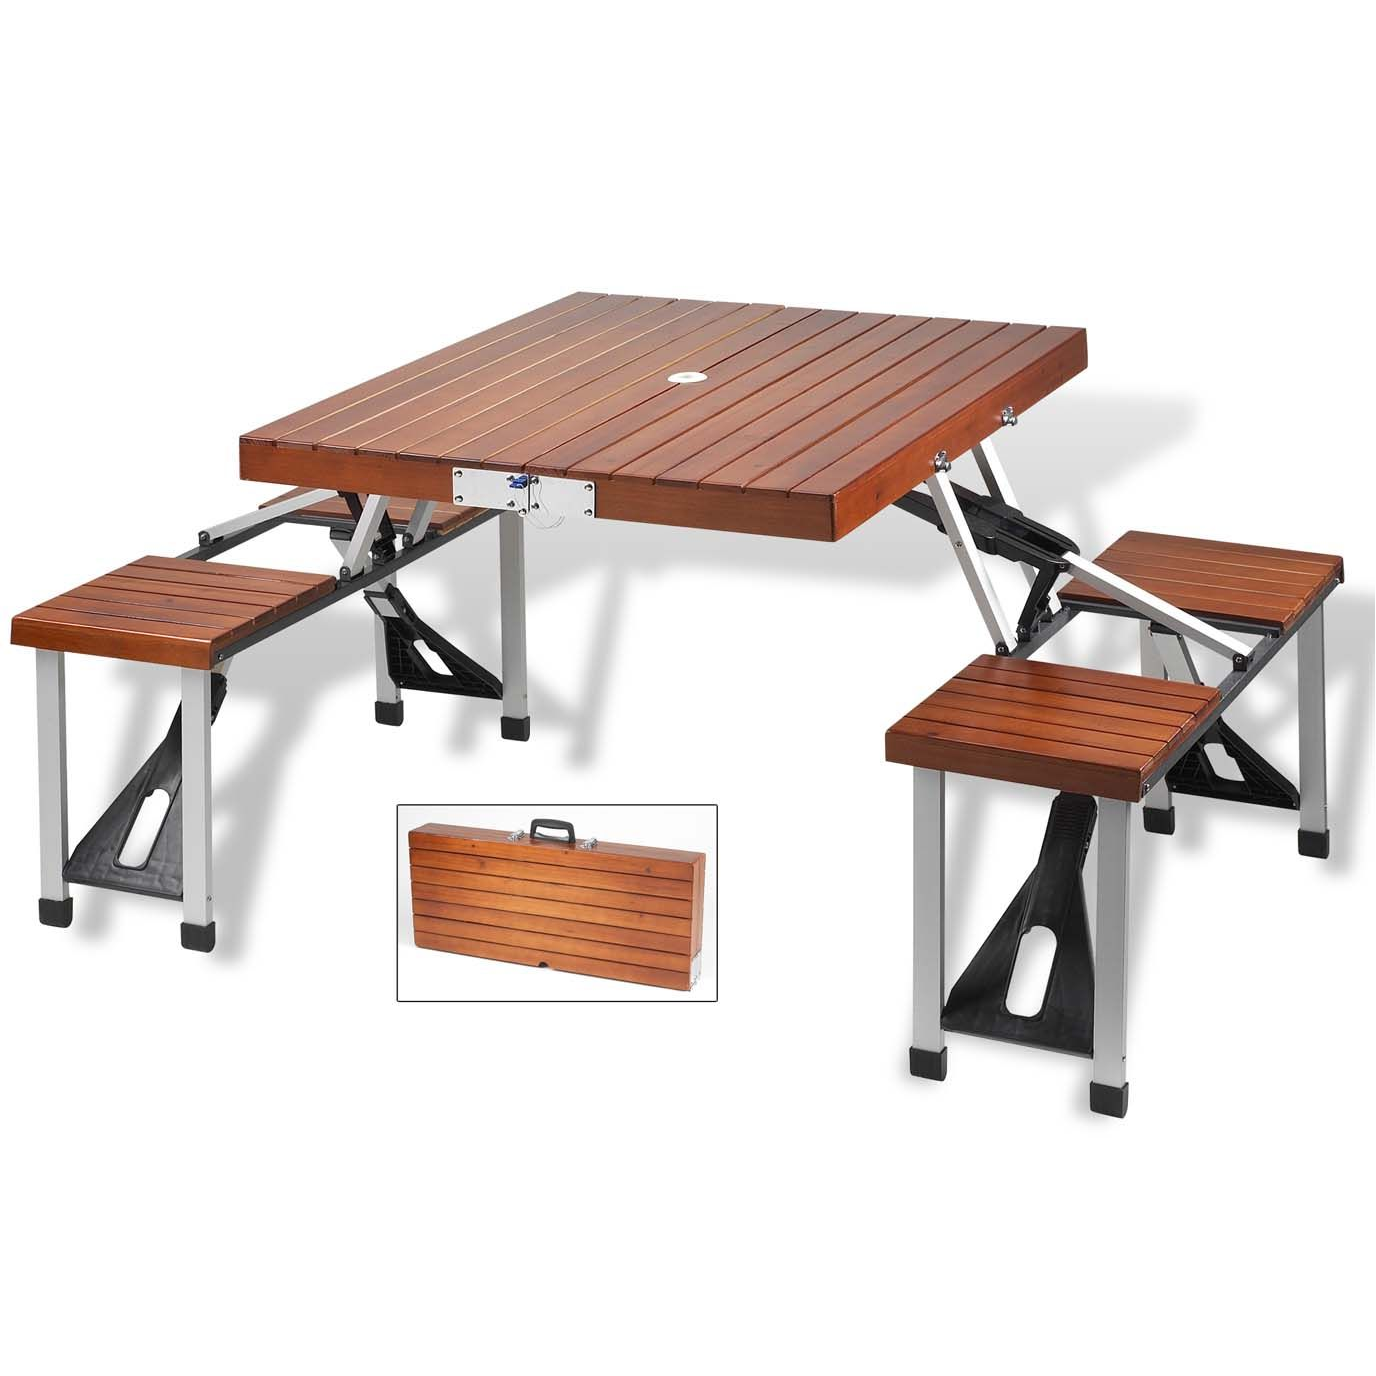 Wooden Picnic Table with Seats